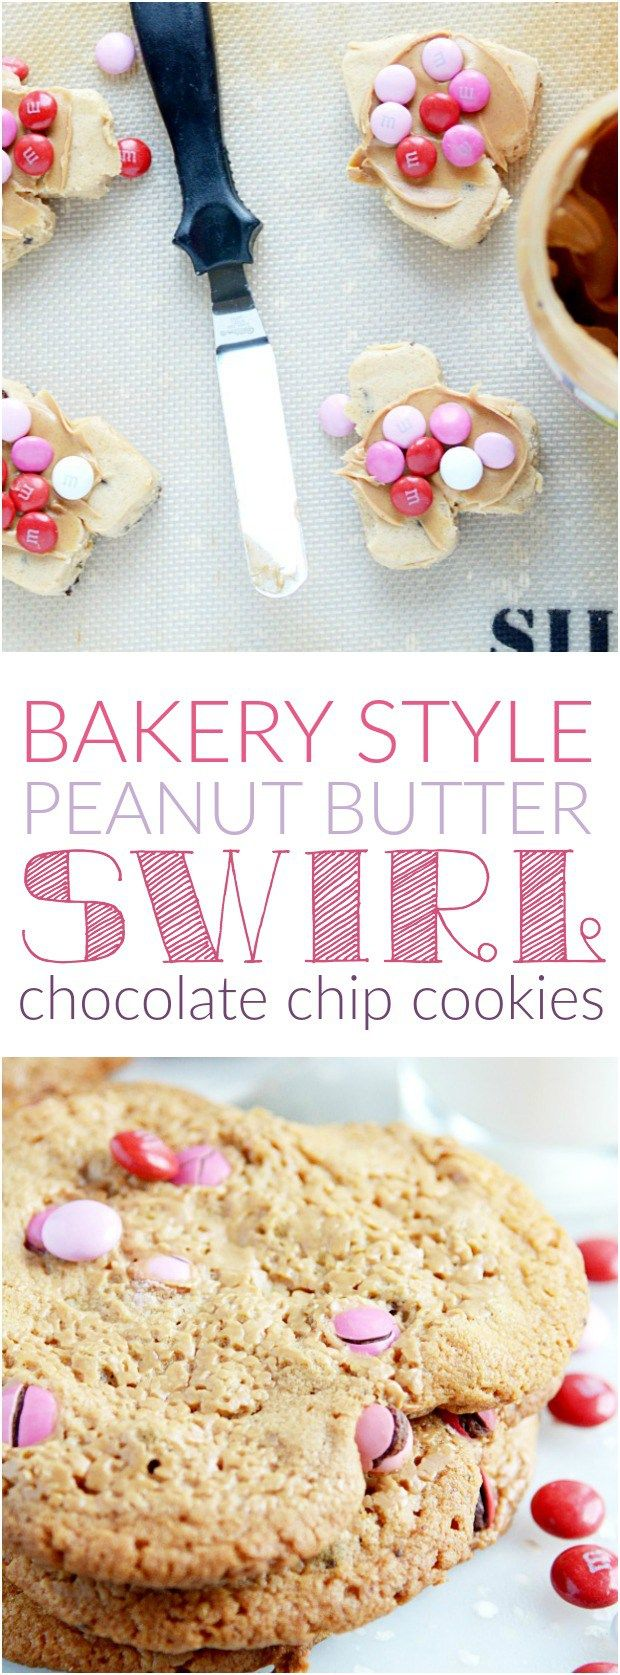 Bakery Style Peanut Butter Swirl Chocolate Chip Cookies | Bakeries ...